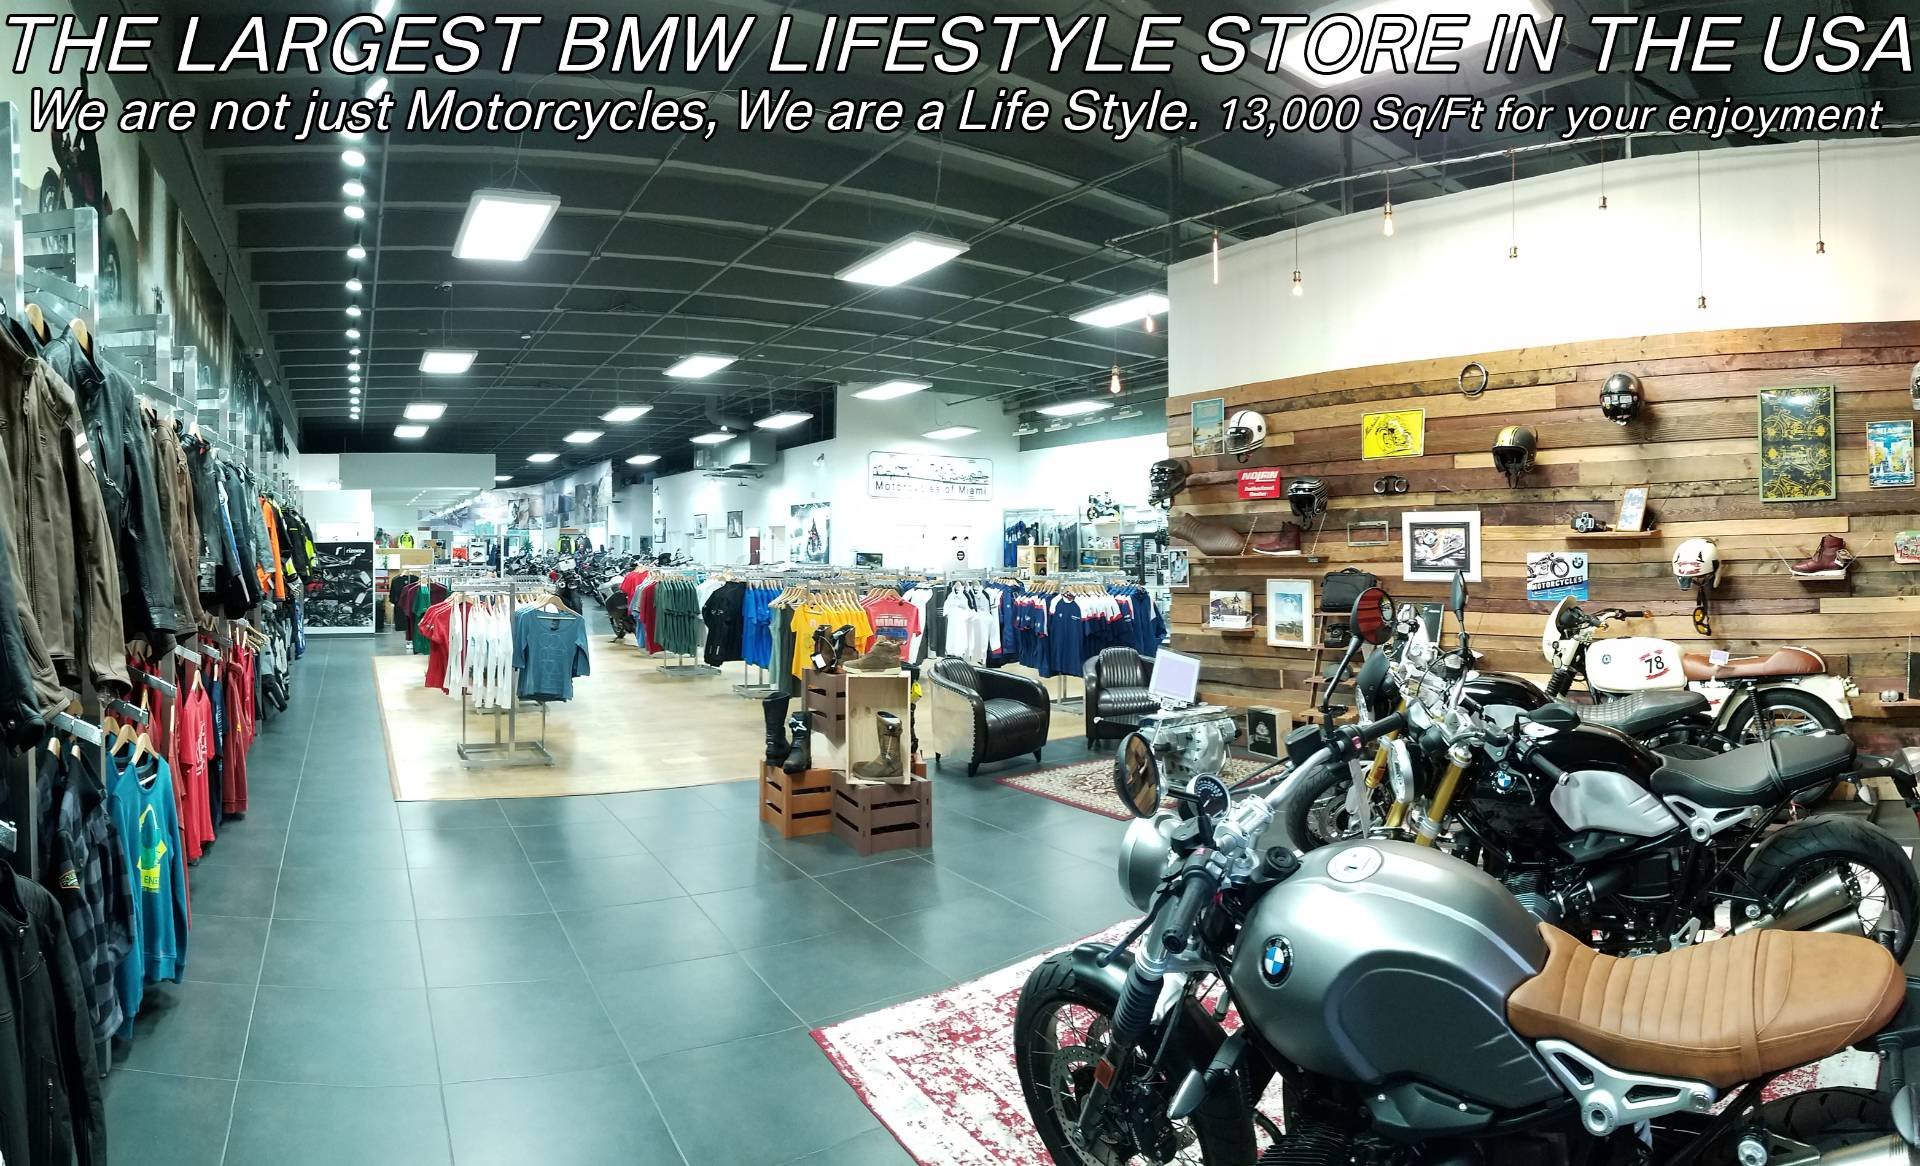 New 2019 BMW R nine T for sale, BMW R nineT for sale, BMW Motorcycle RnineT, BMW Motorcycles of Miami, Motorcycles of Miami, Motorcycles Miami - Photo 23